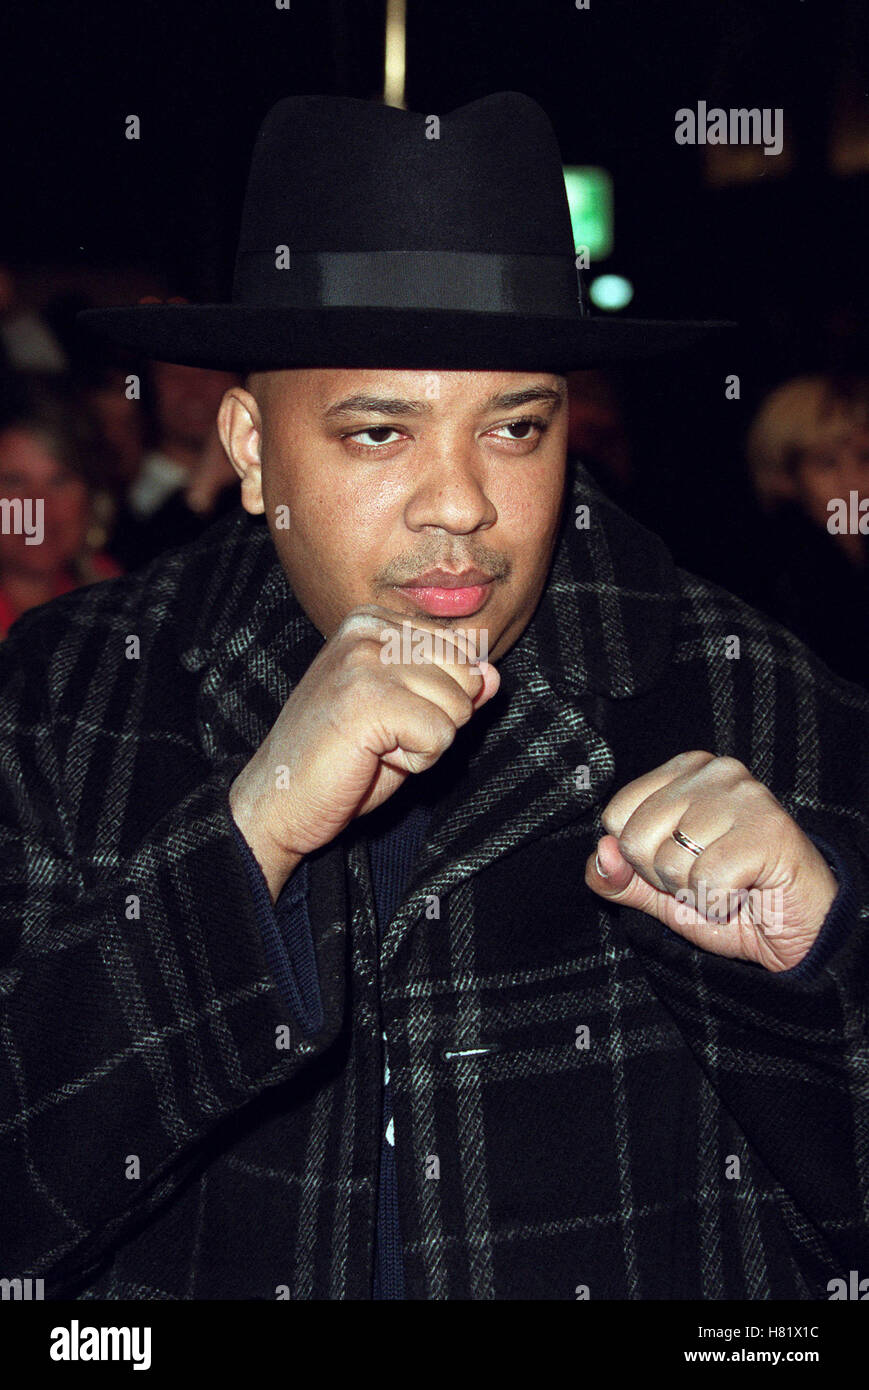 RUN DMC MUHAMMAD ALI'S 60TH BIRTHDAY KODAK THEATRE LA USA 12 January 2002 - Stock Image